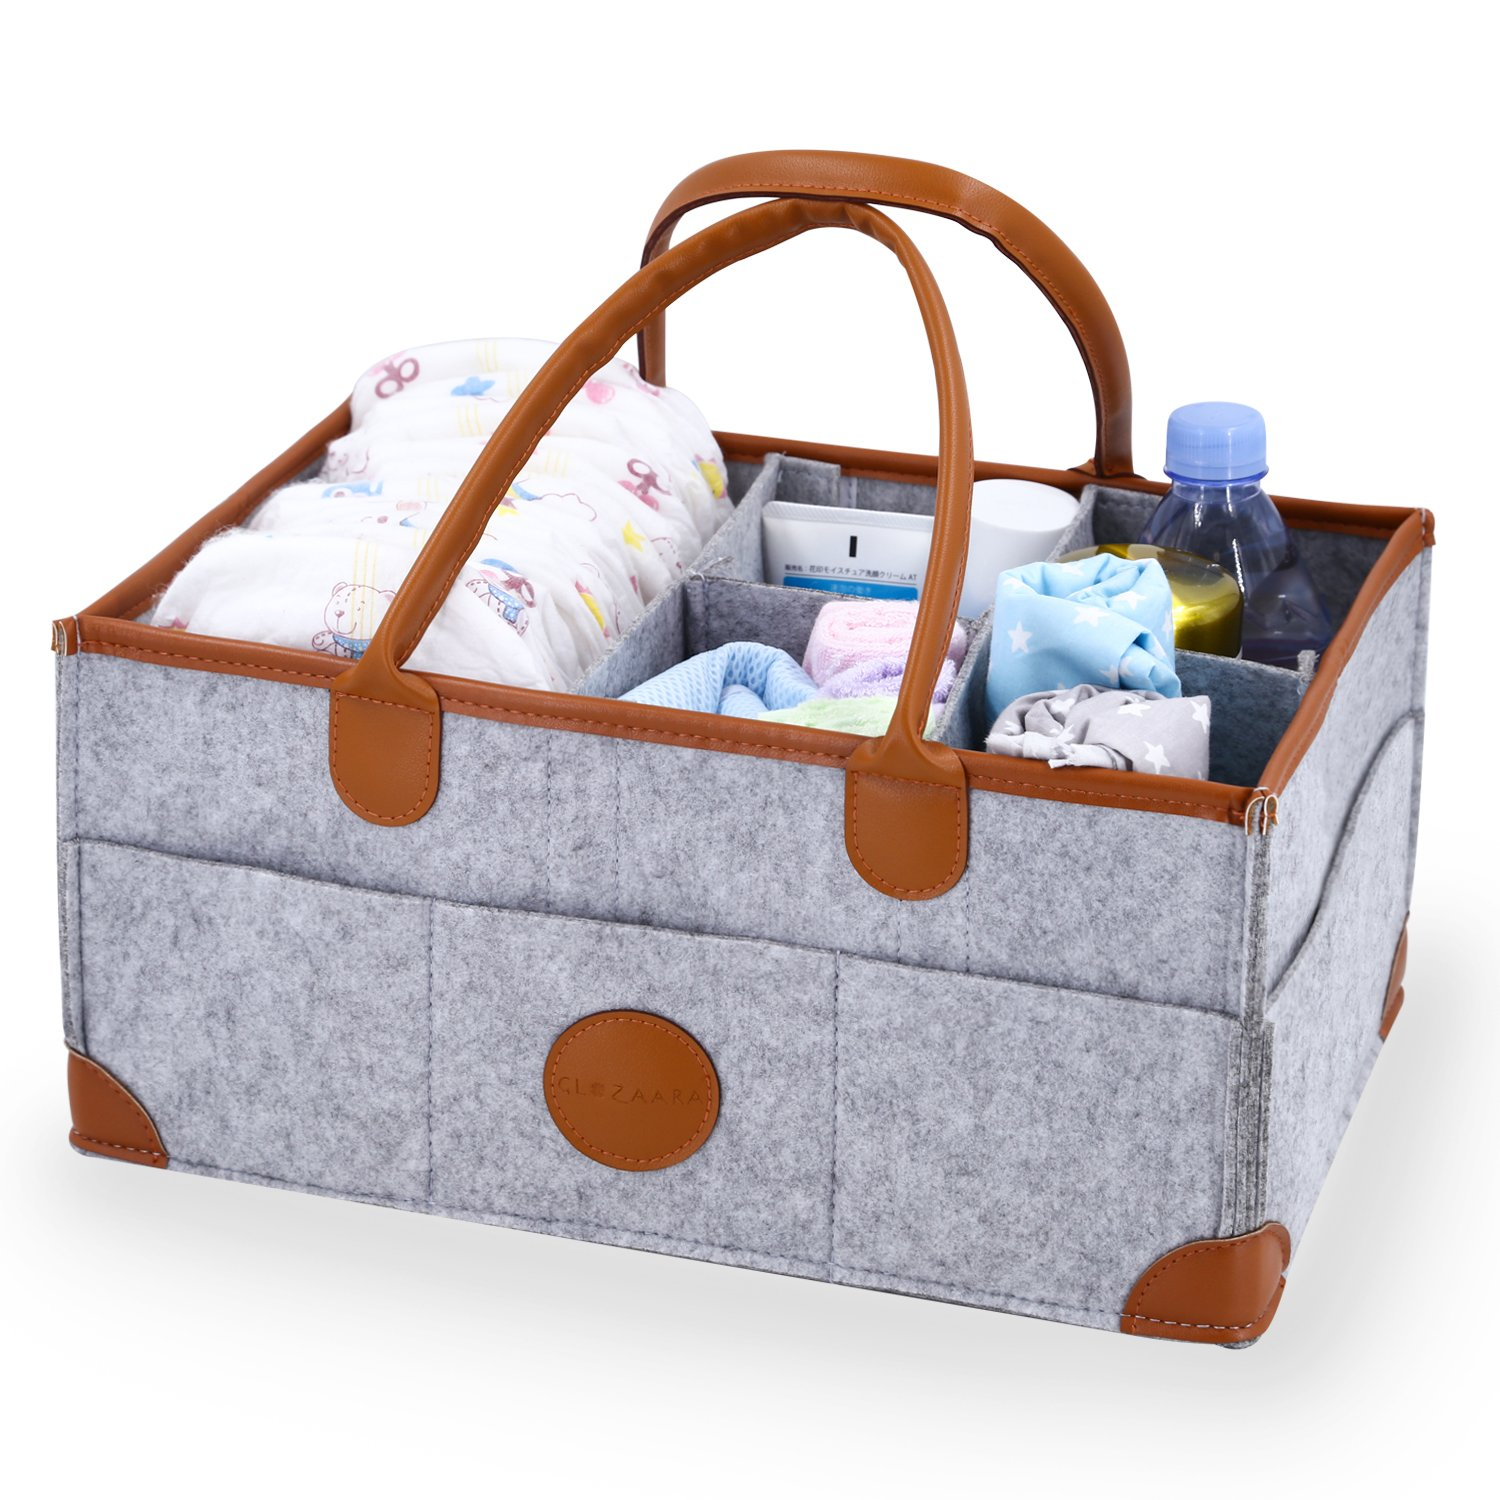 Baby Diaper Caddy Changing Table Organizer - Nursery Storage Bin - Baby Shower Gifts Basket for Boys Girls - Newborn Registry Must Haves - Portable Car Organizer